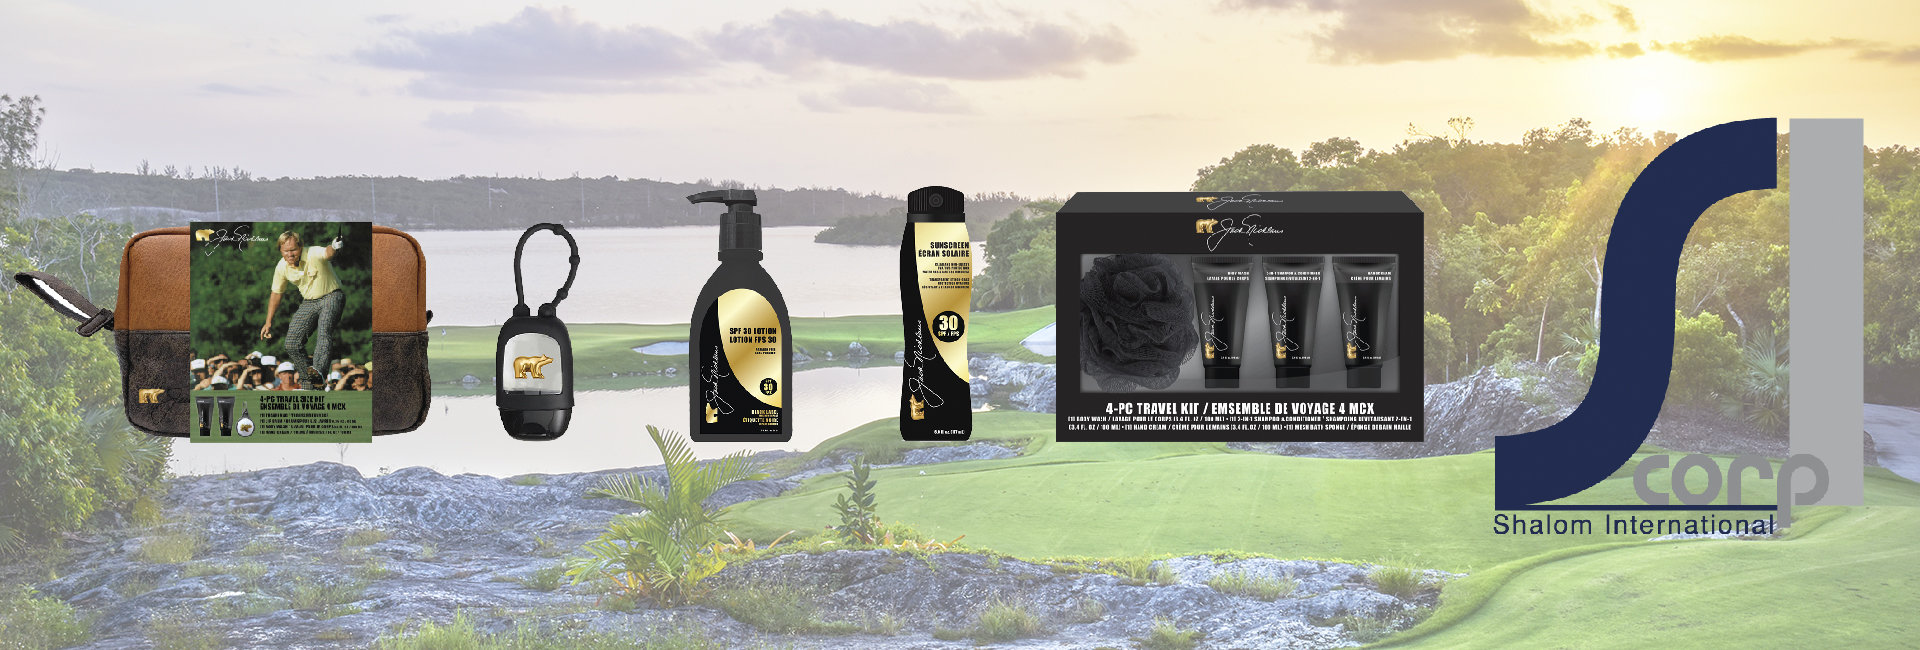 Shalom International and Nicklaus joined forces in January of 2019 to bring the Jack Nicklaus Grooming collection to life.